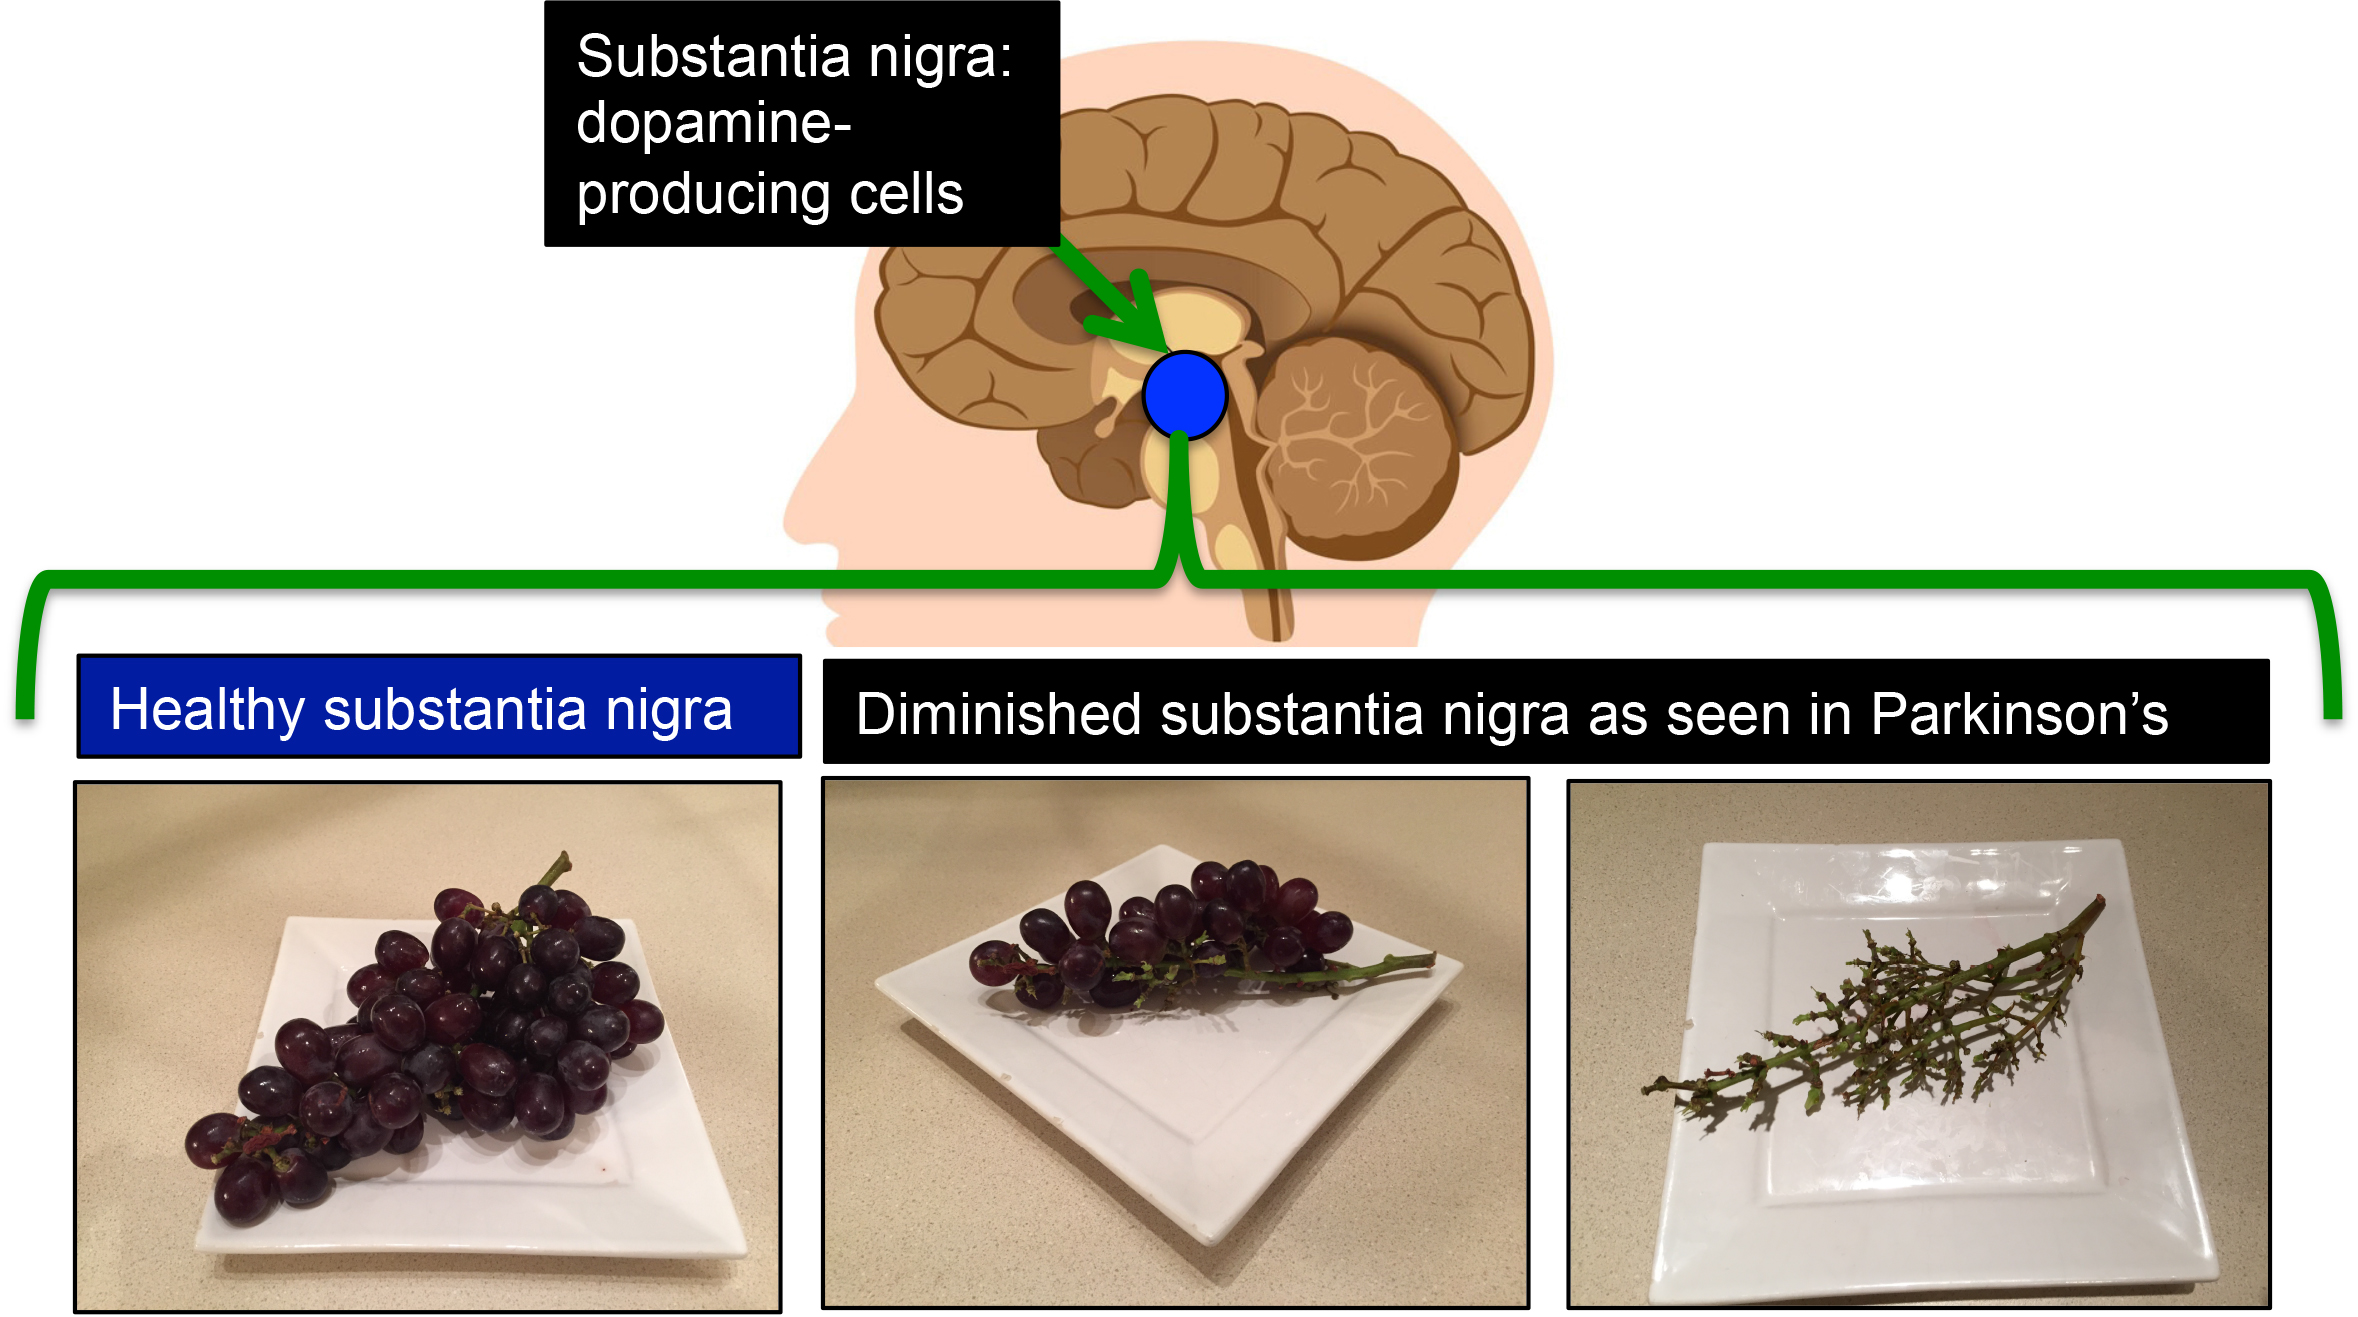 complementary and alternative medicine cam in parkinson s a bunch of grapes vs the substantia nigra a small region of the mid brain called the substantia nigra is responsible for making the all essential